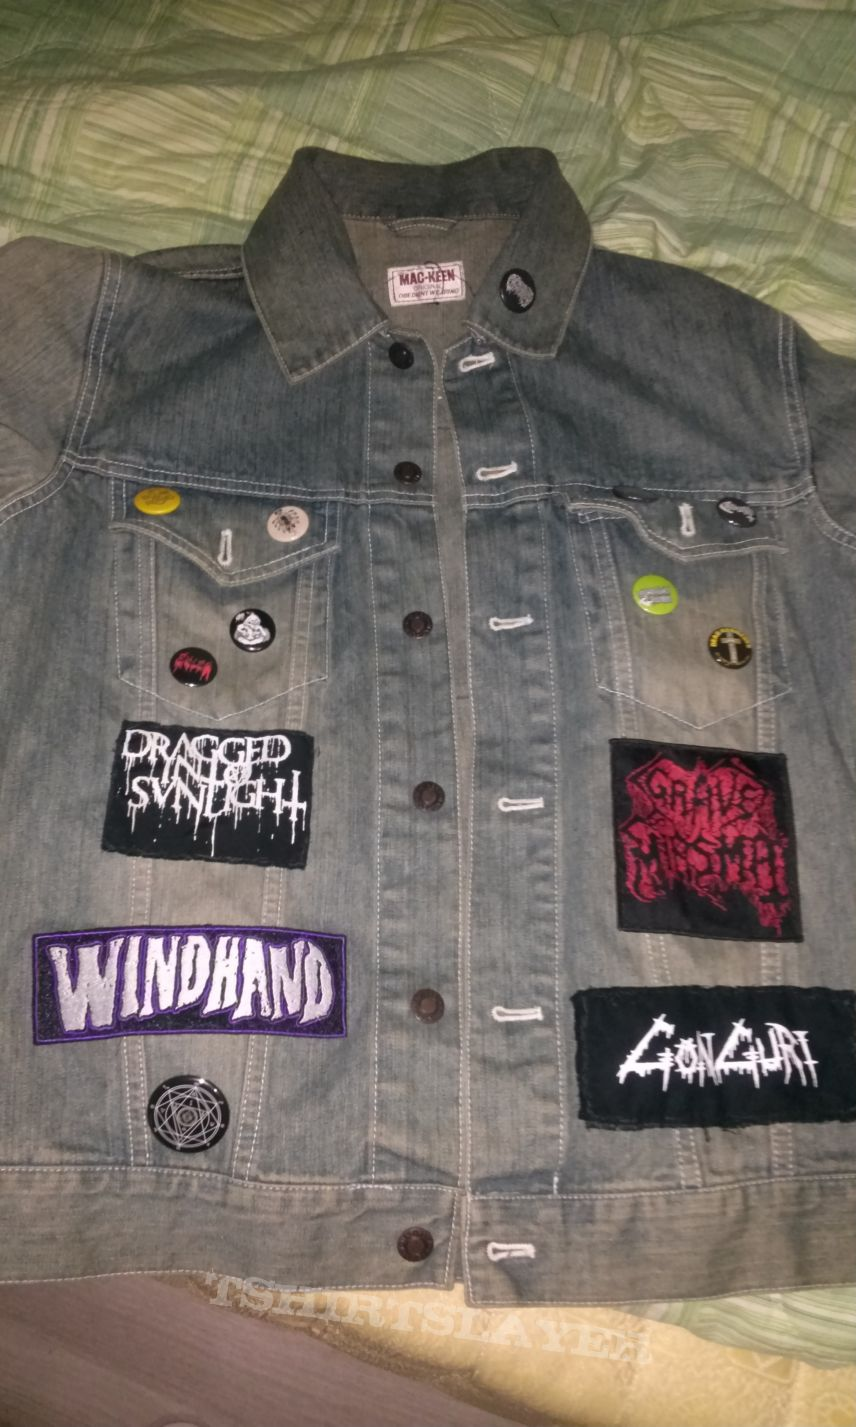 My jacket under construction